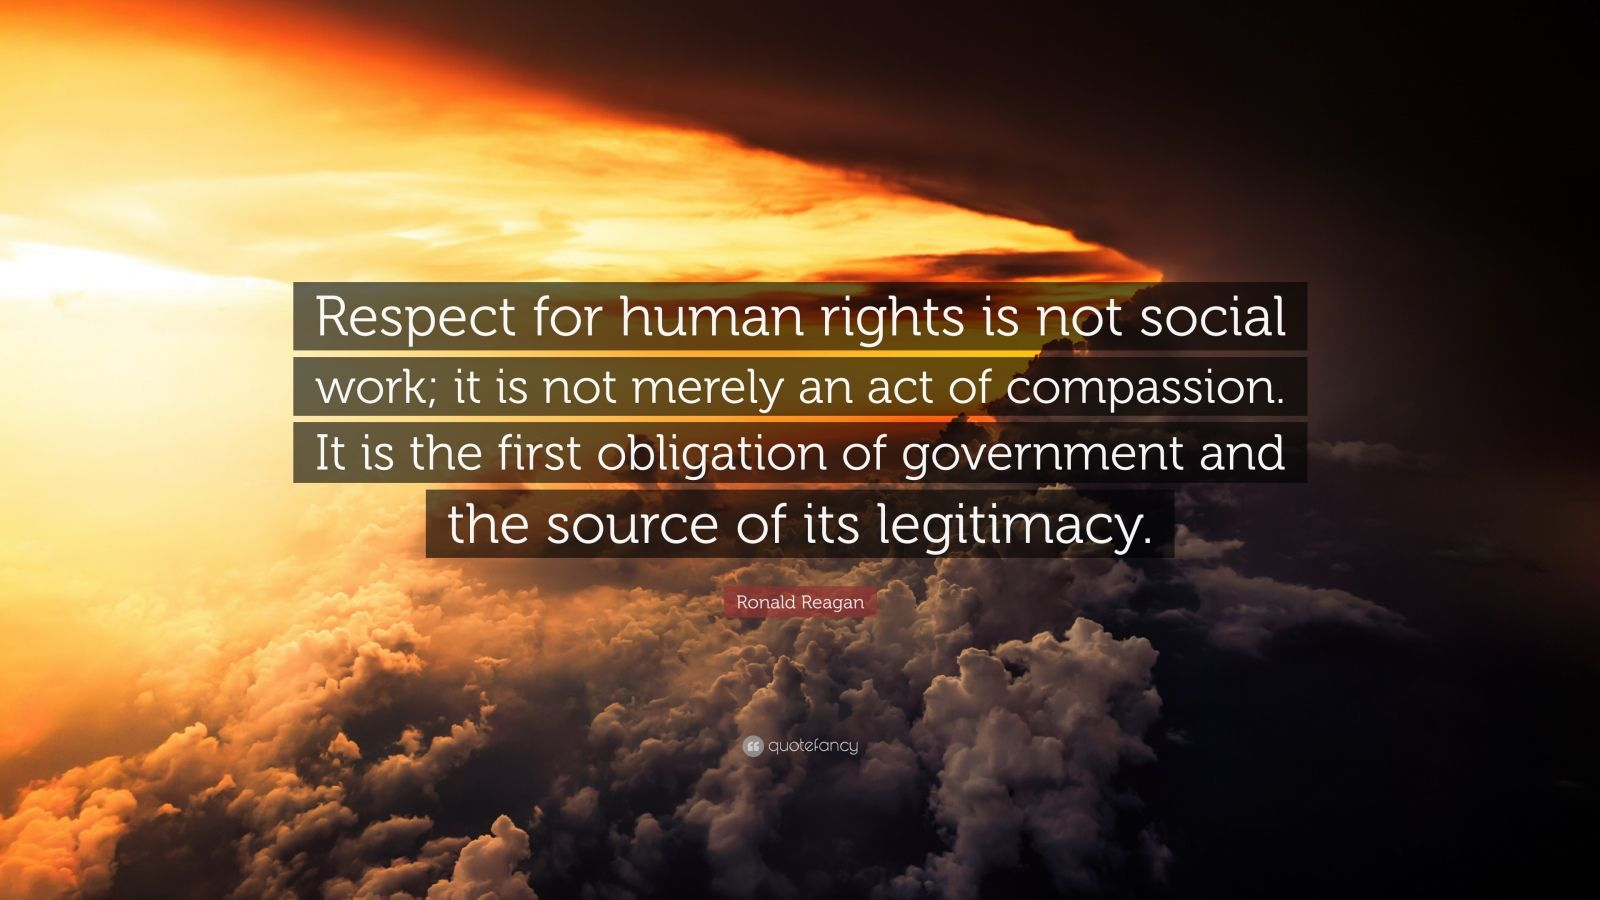 Inspiring Relationship Quotes Wallpaper Ronald Reagan Quote Respect For Human Rights Is Not